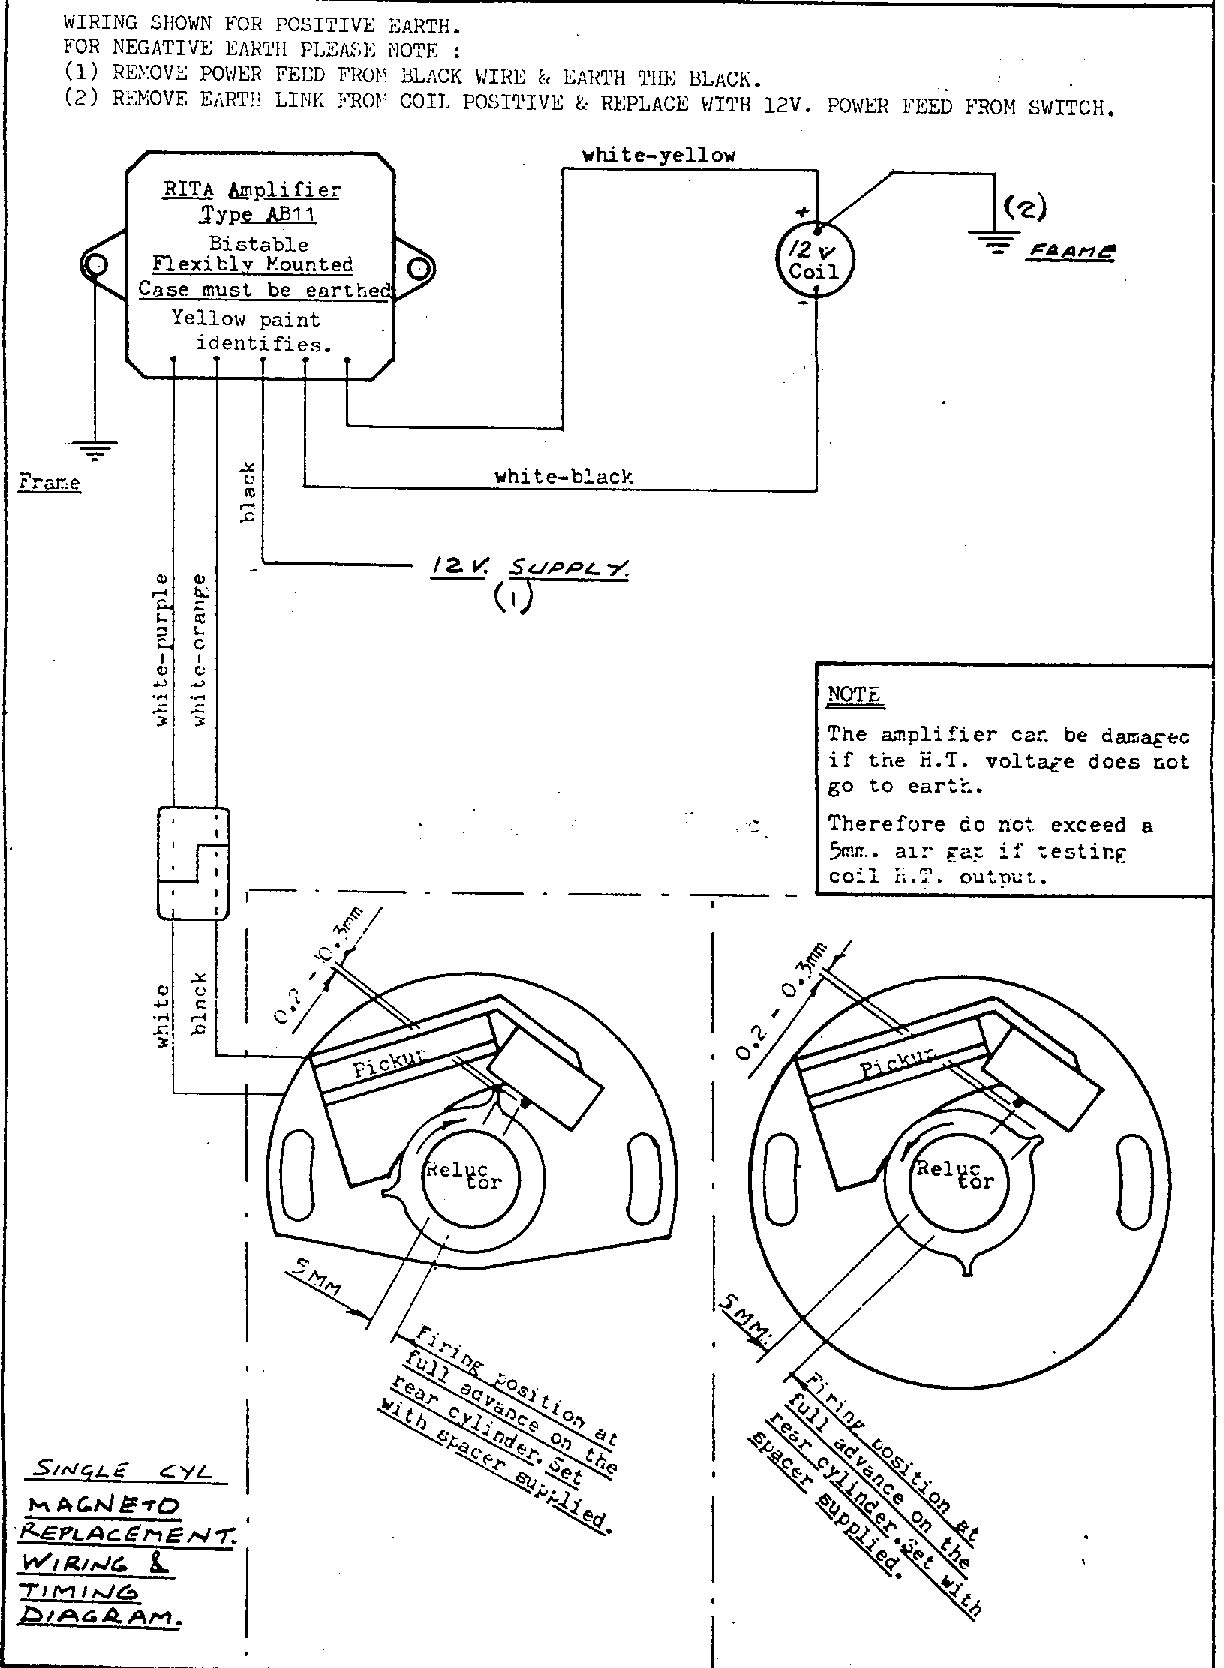 Euro Spares Electronic Components Wiring A Commando Plug Diagram For Installing The Lr134 Rita Ignition Magneto Replacement Single Parallel Twin